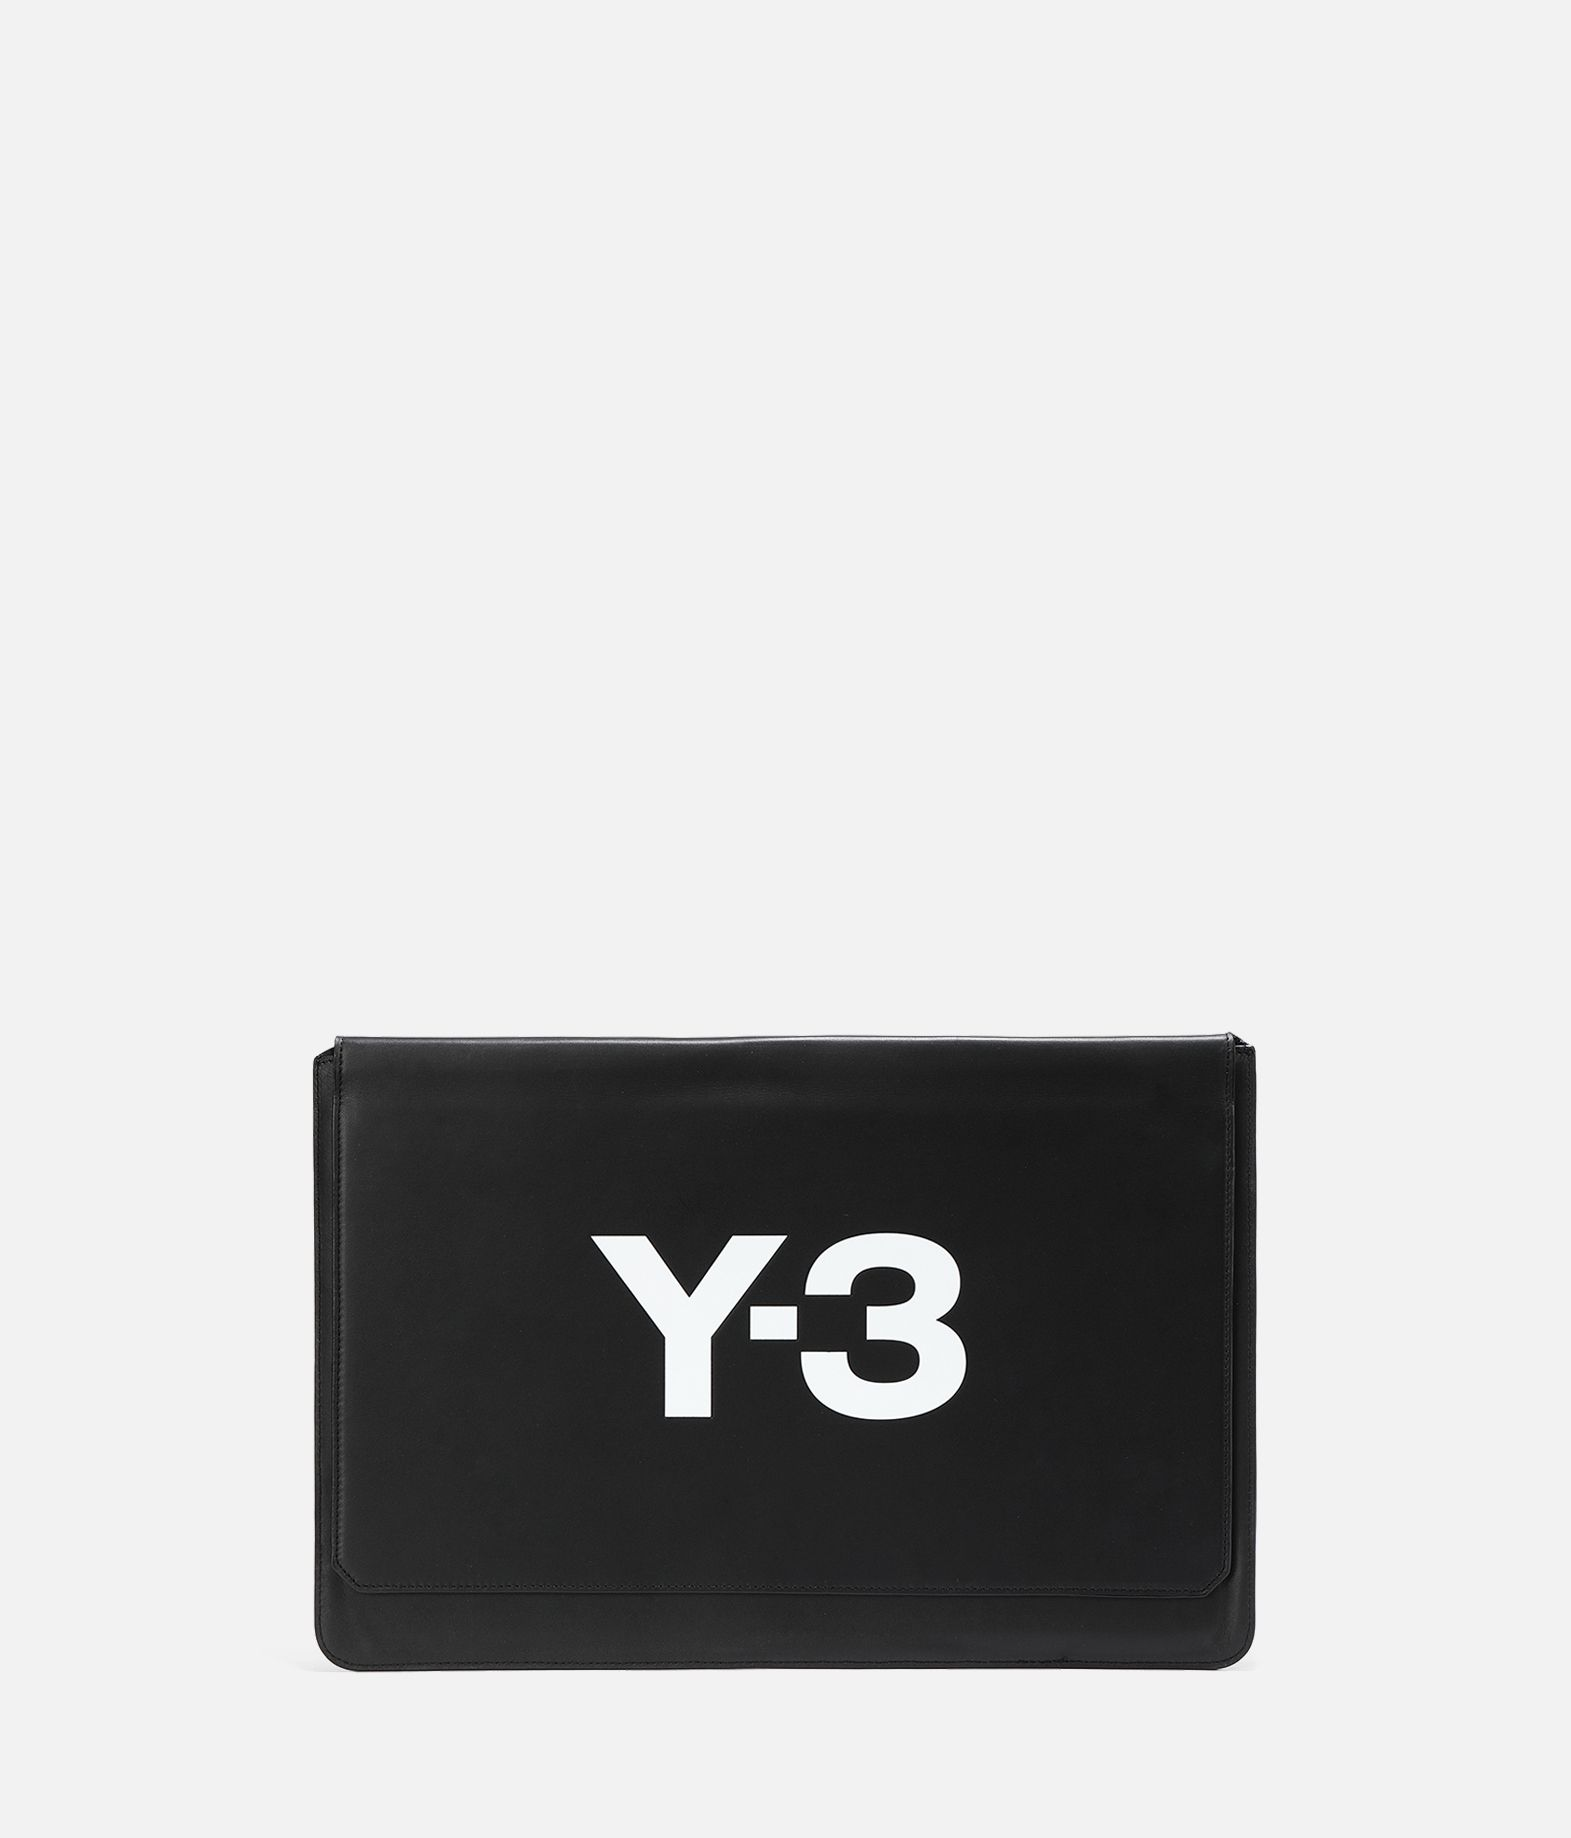 "Y-3 Y-3 Laptop Sleeve 15"" Laptop Sleeve E f"